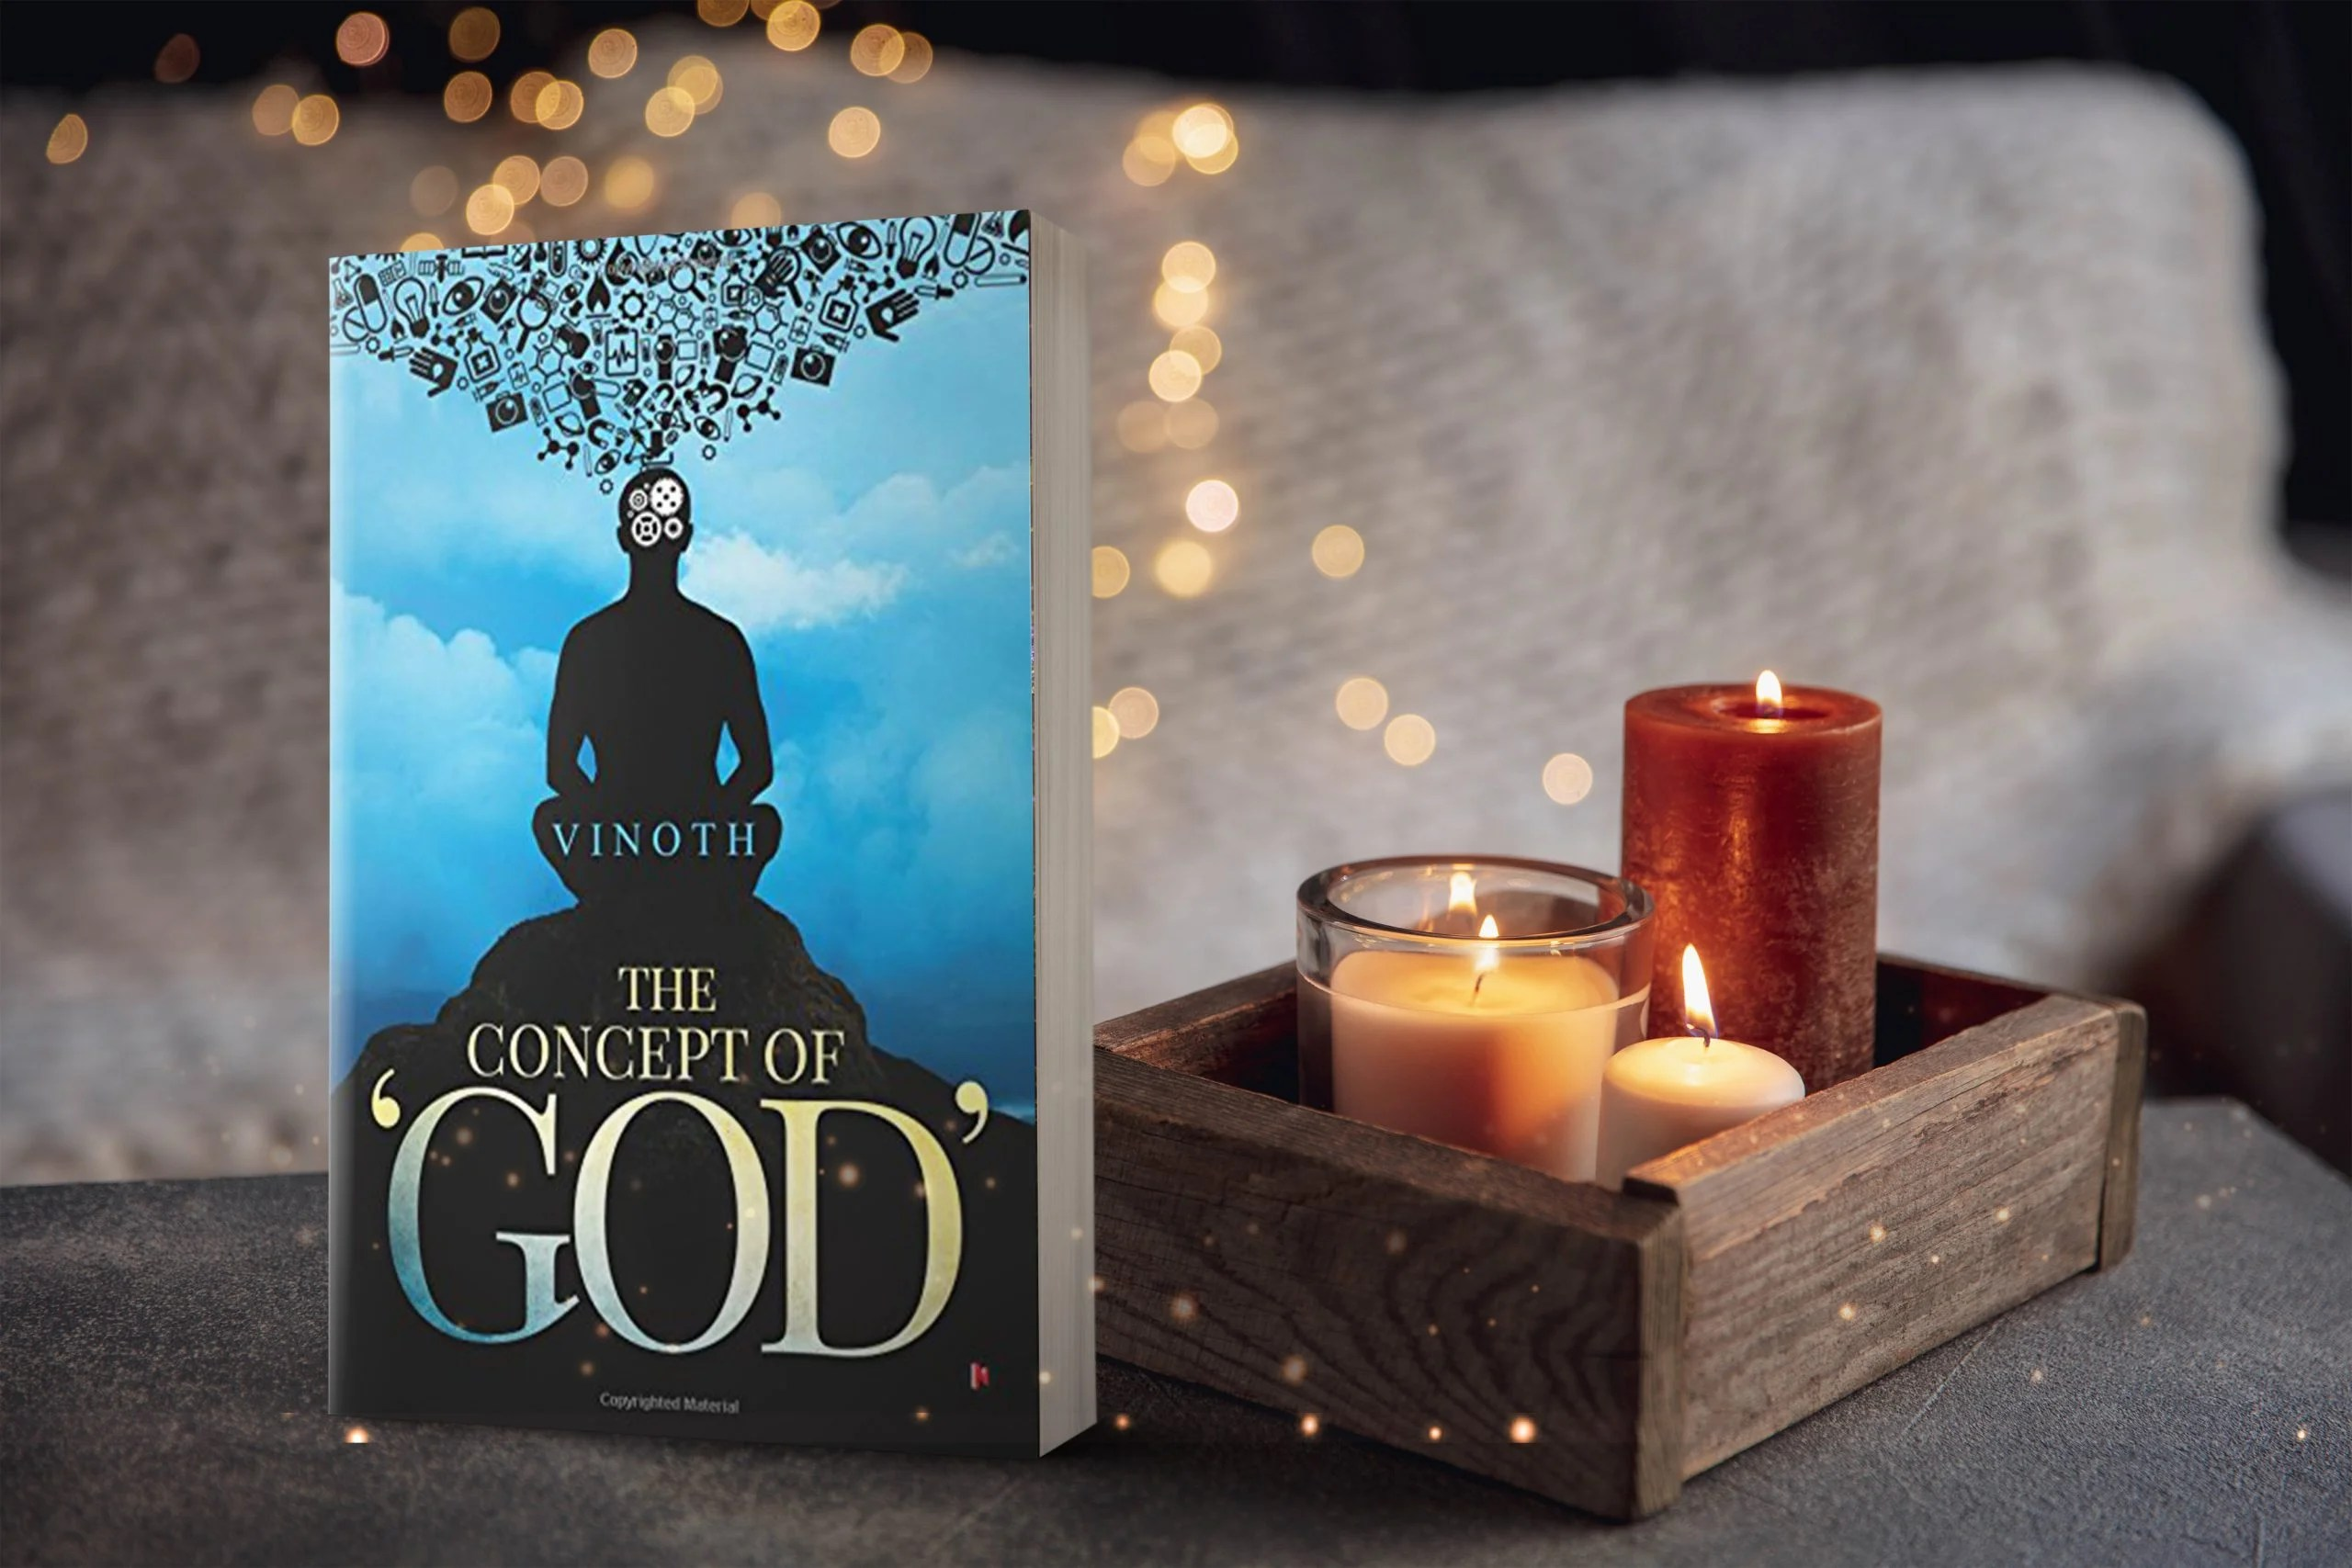 Book Review - The Concept of God by Vinoth